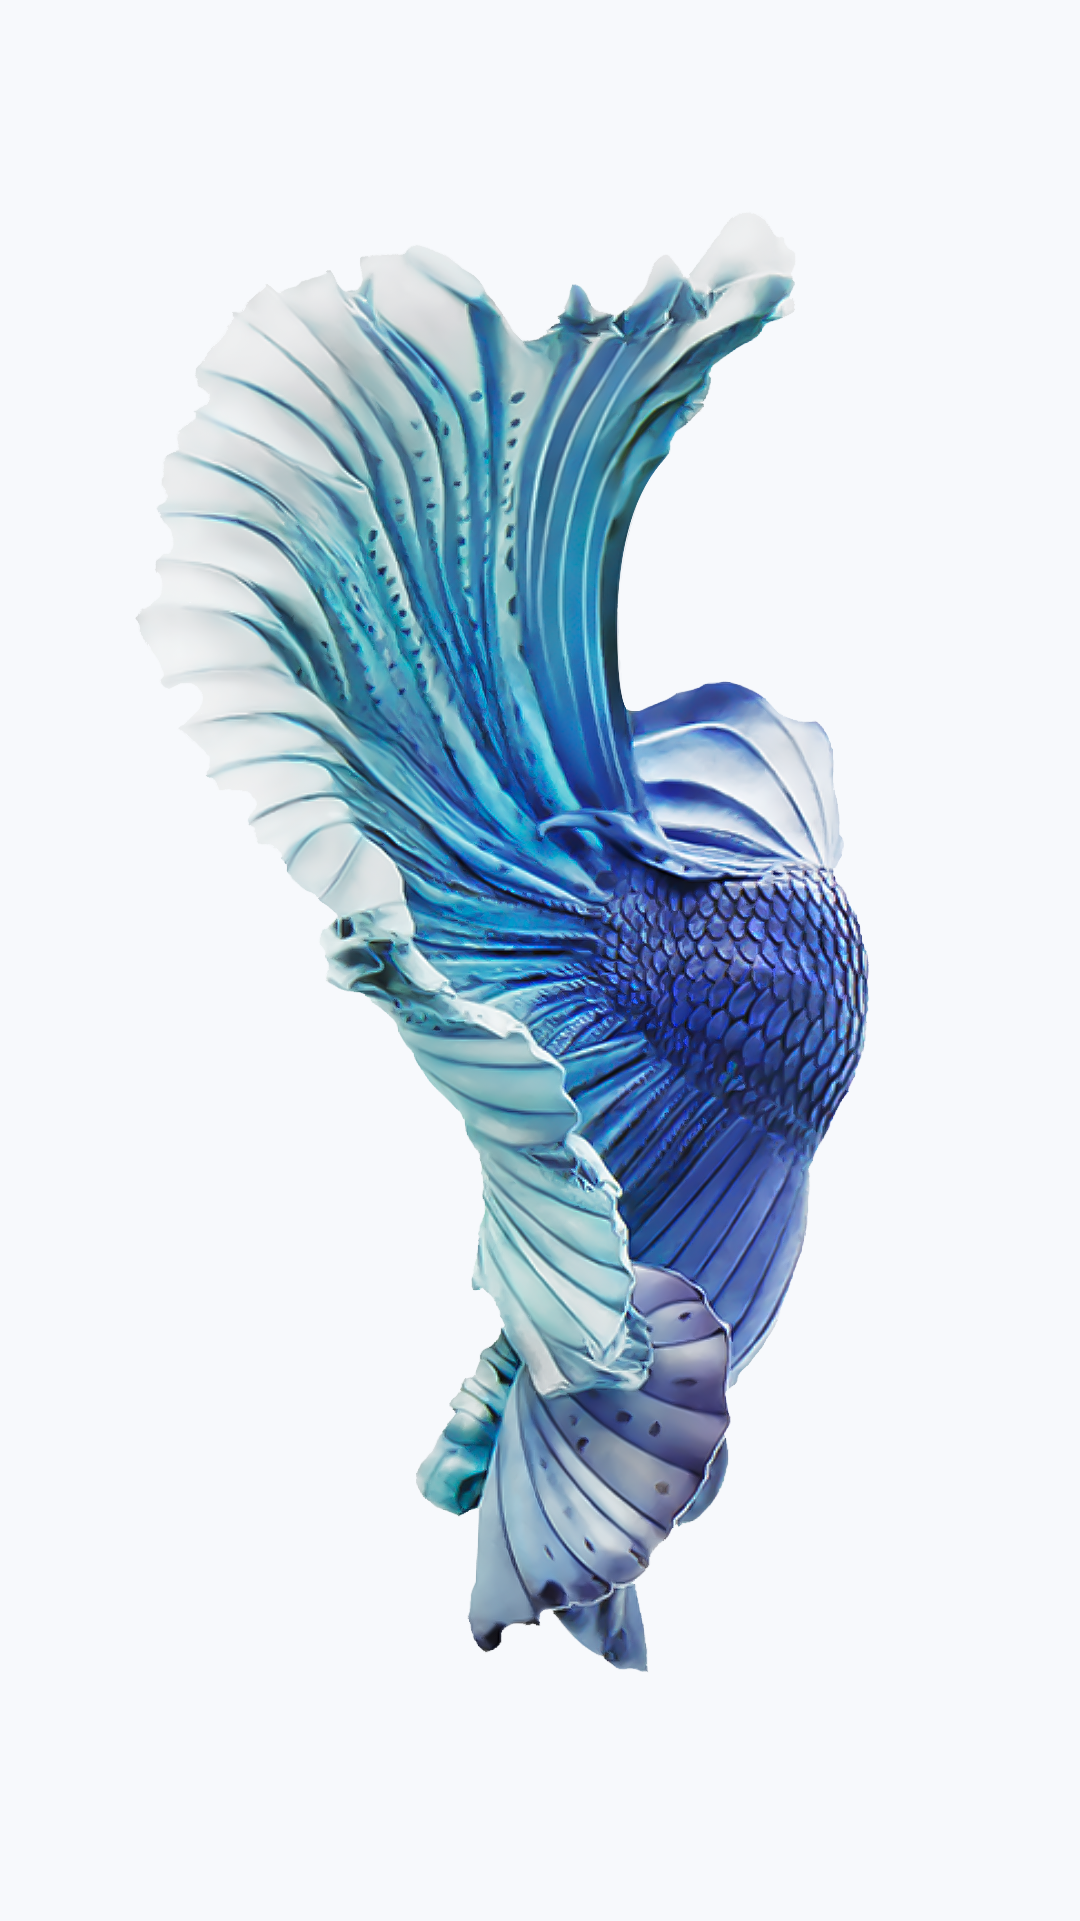 IPhone 6s Silver Blue Fish Wallpaper 1080x1921